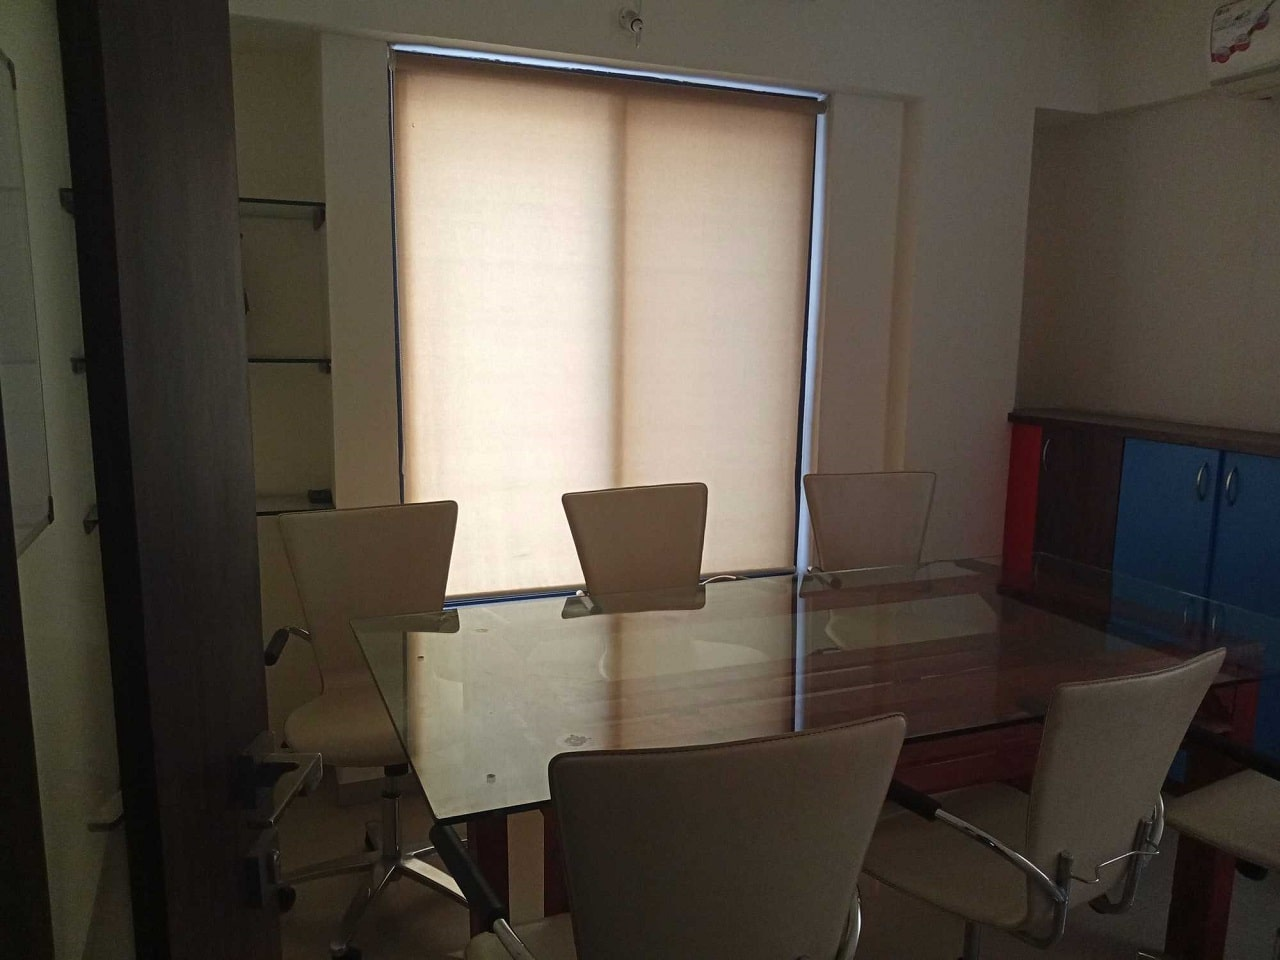 VCN Co-working Space